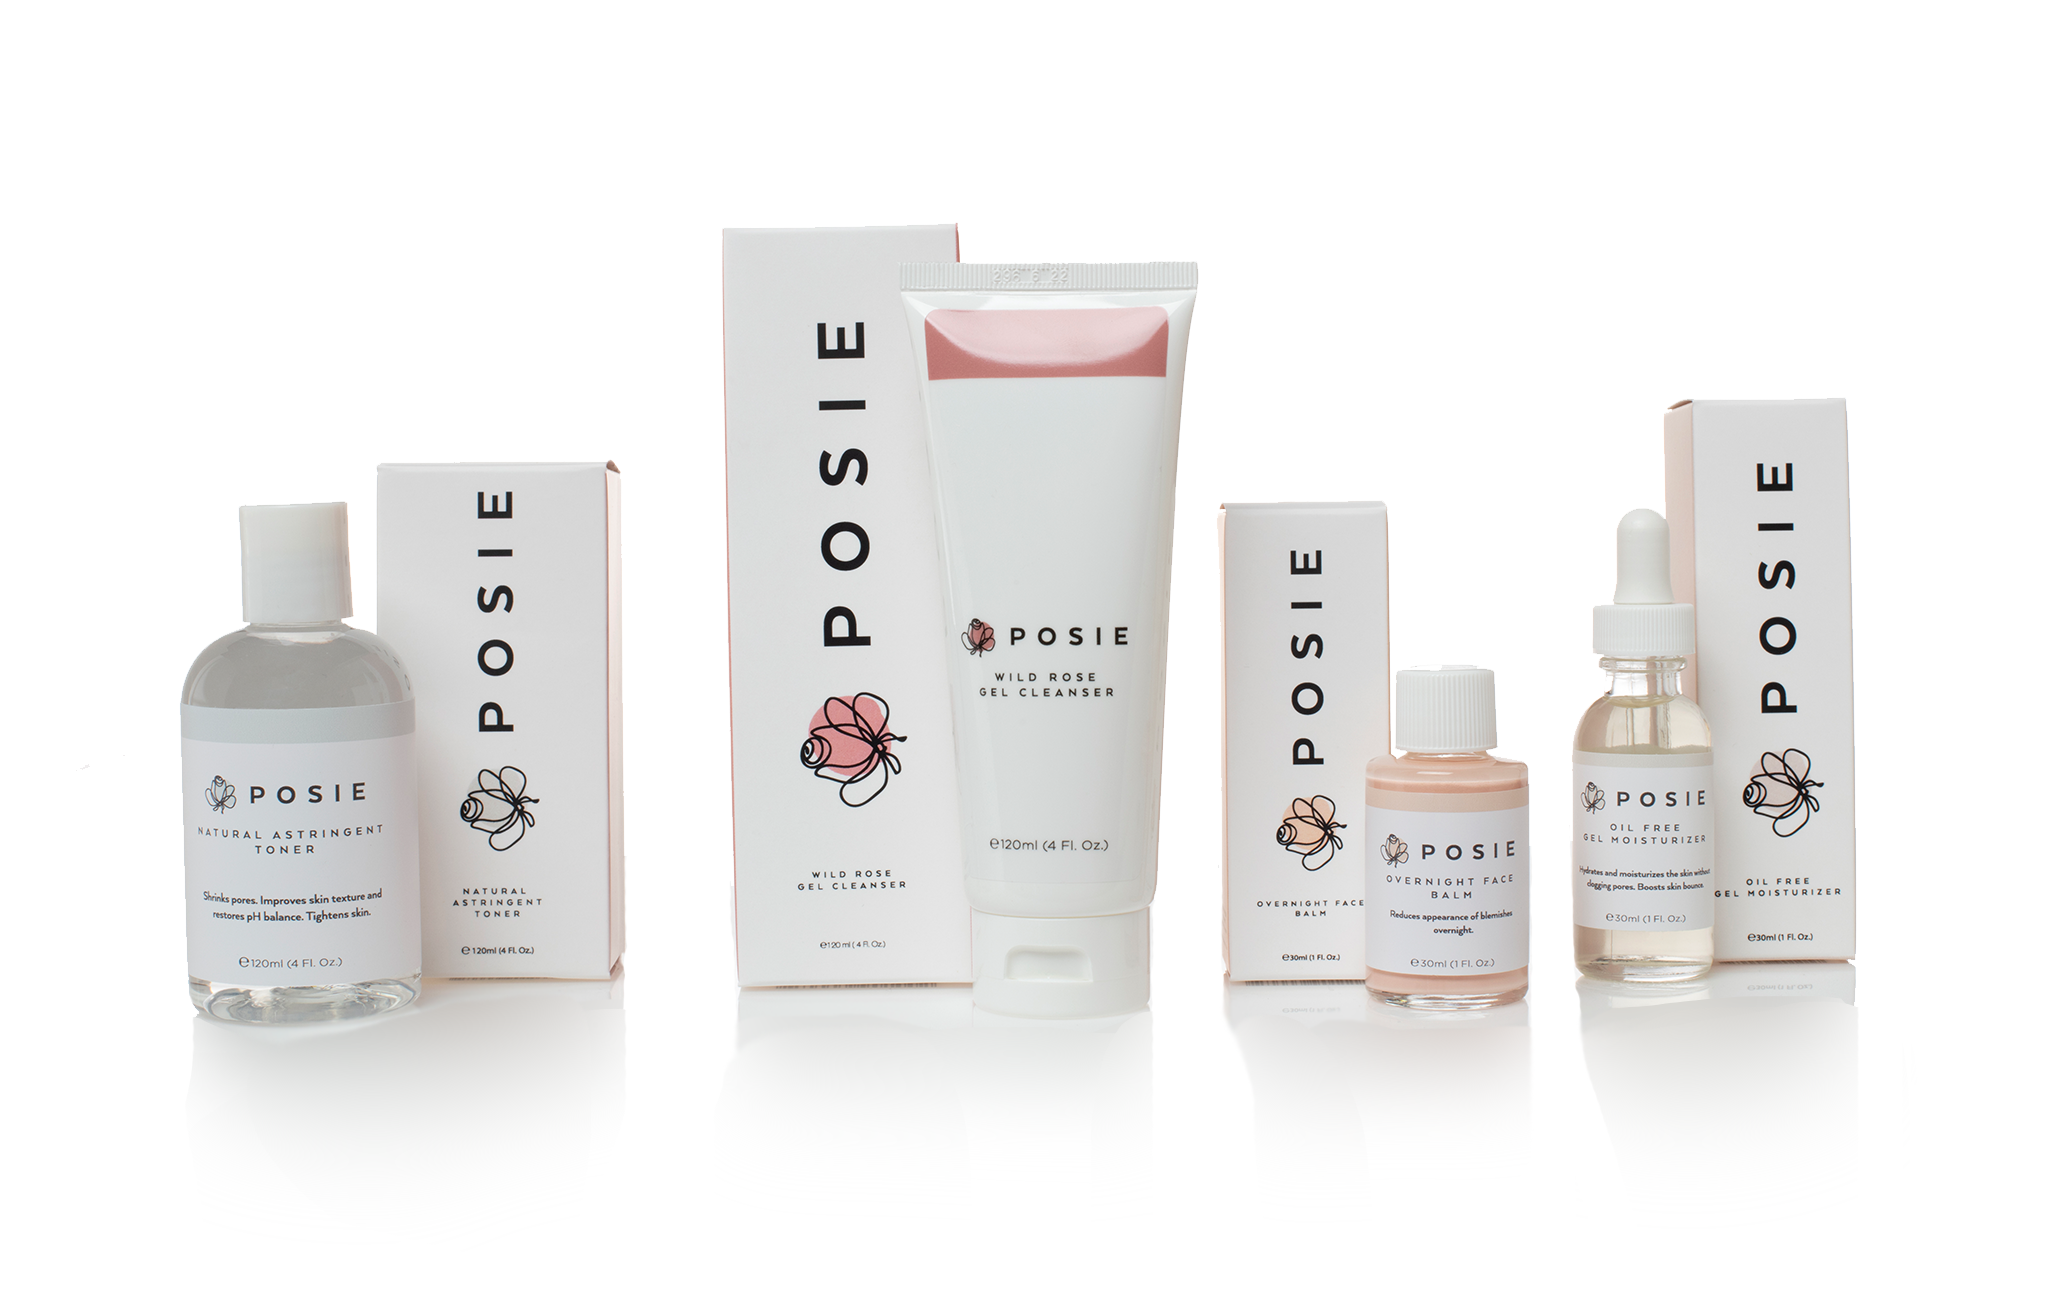 Posie Product Design Packaging